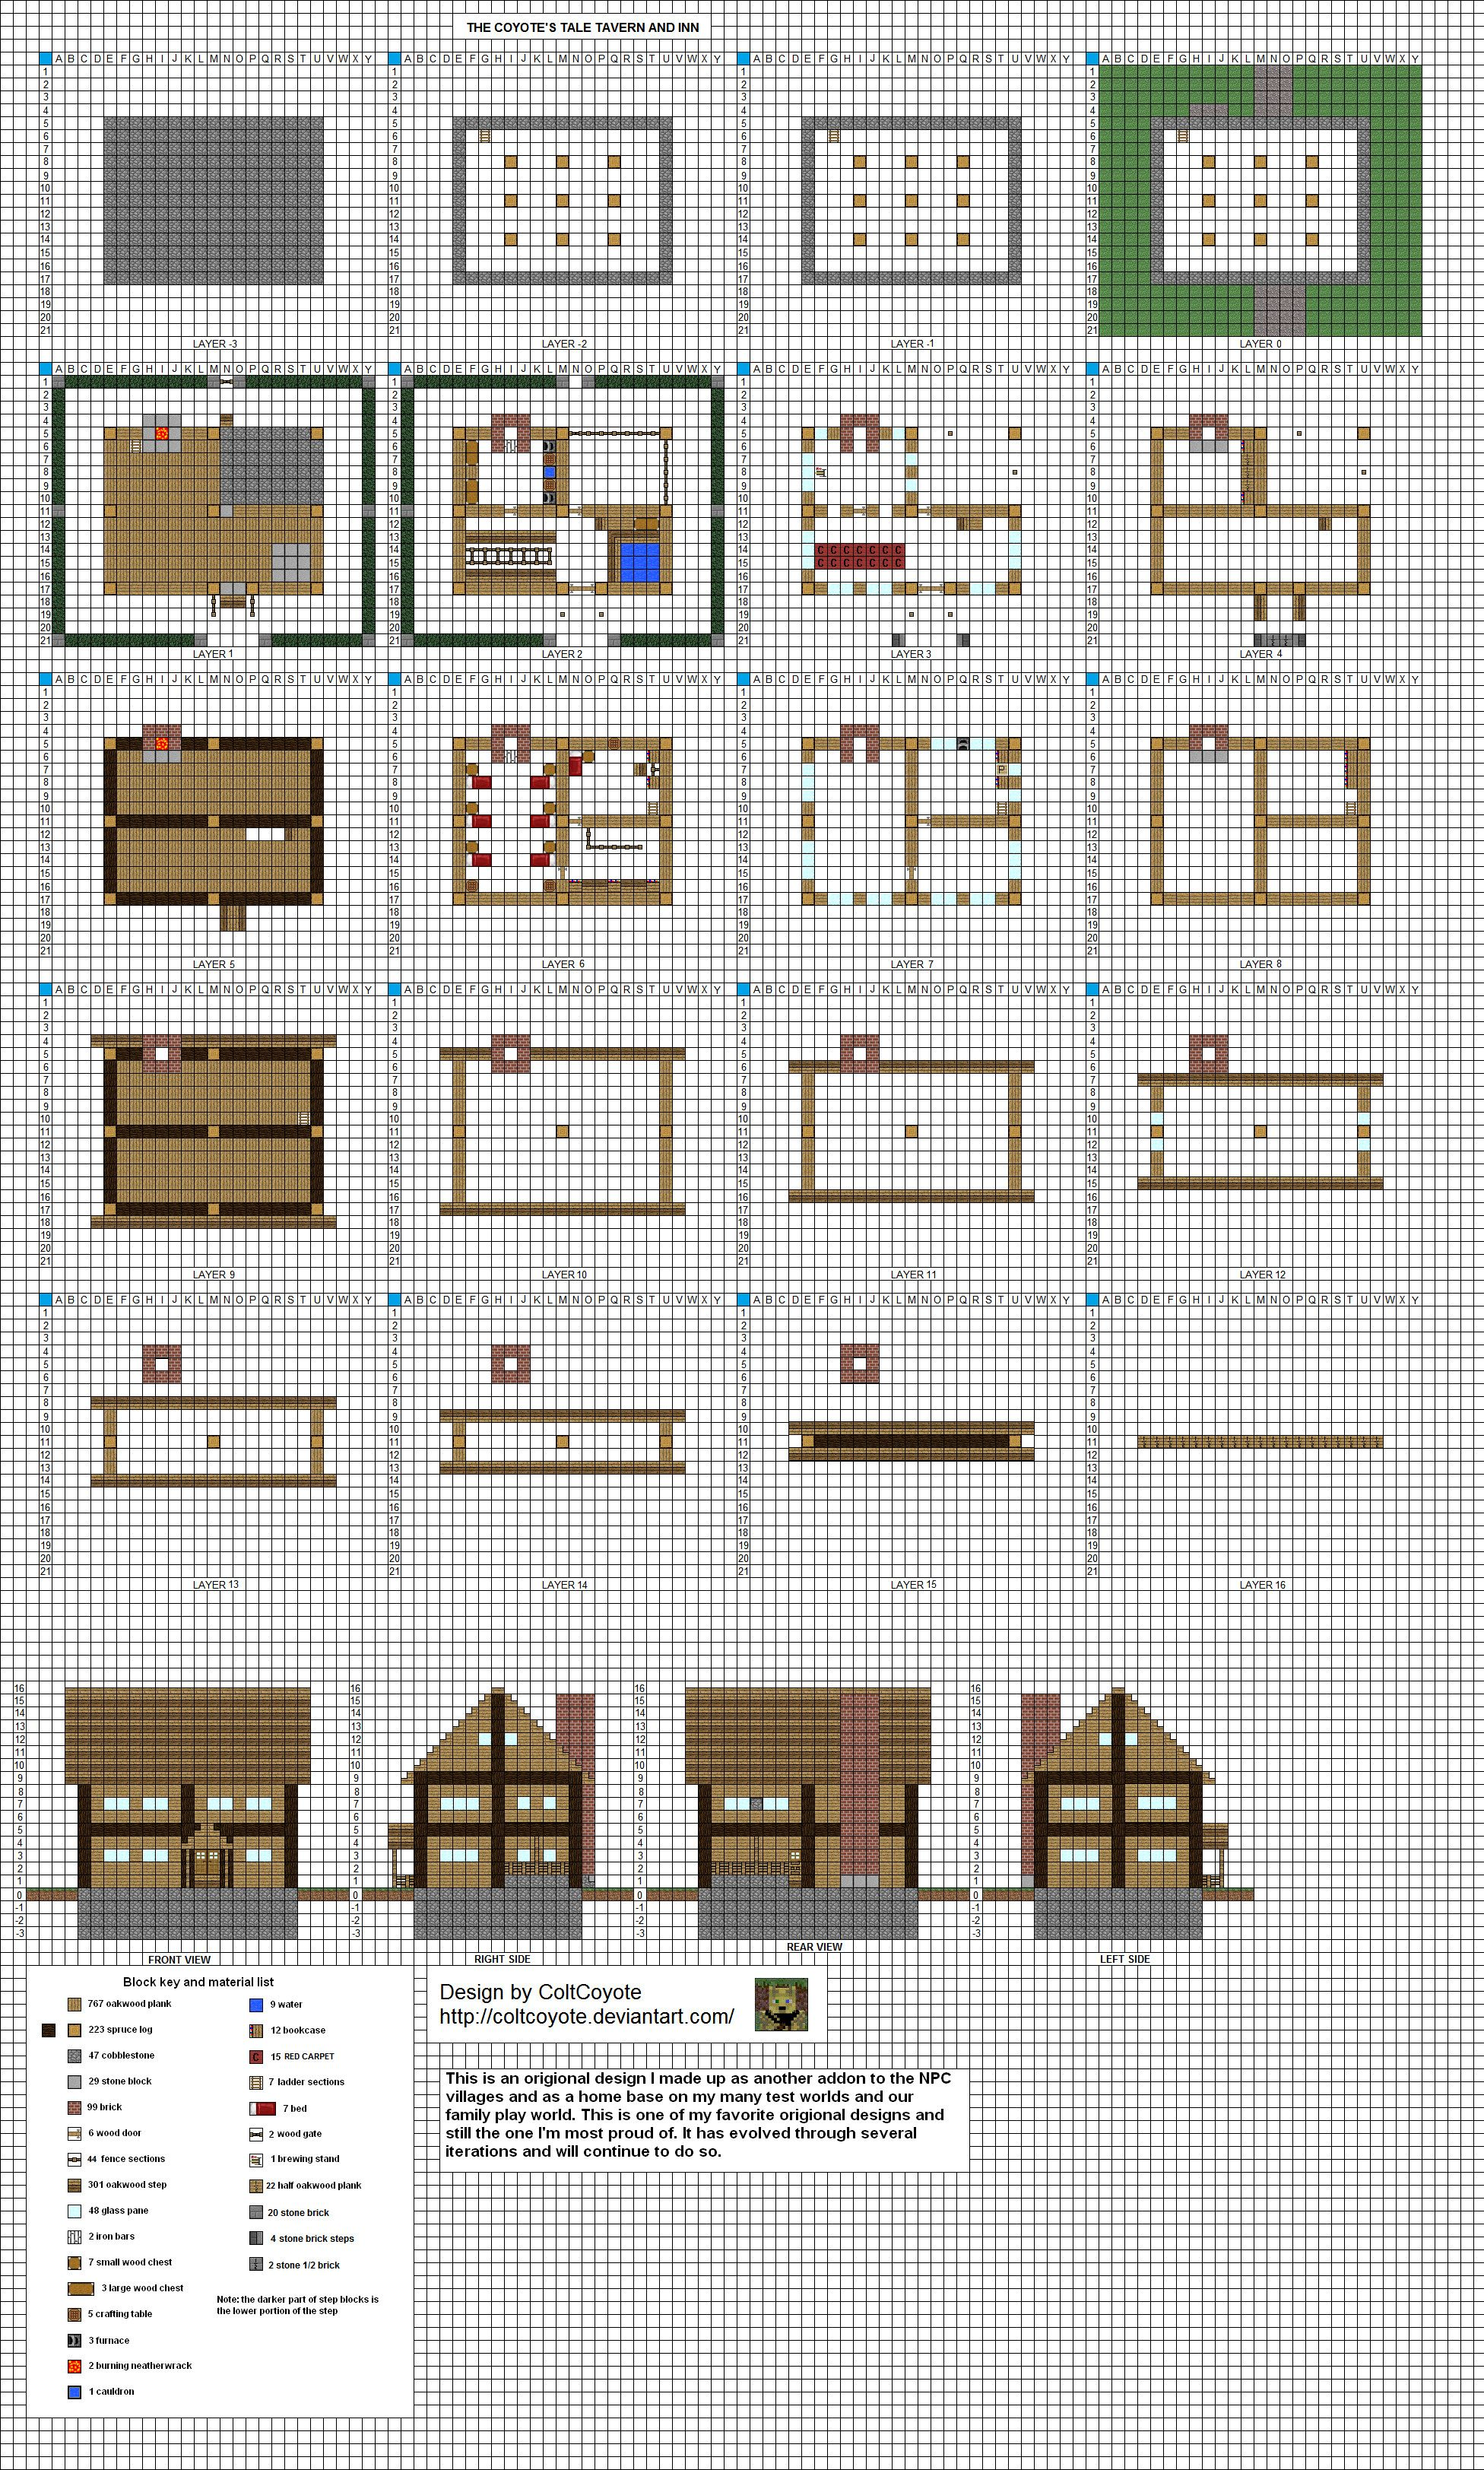 Small inn mk3 by on deviantart for House plans maker